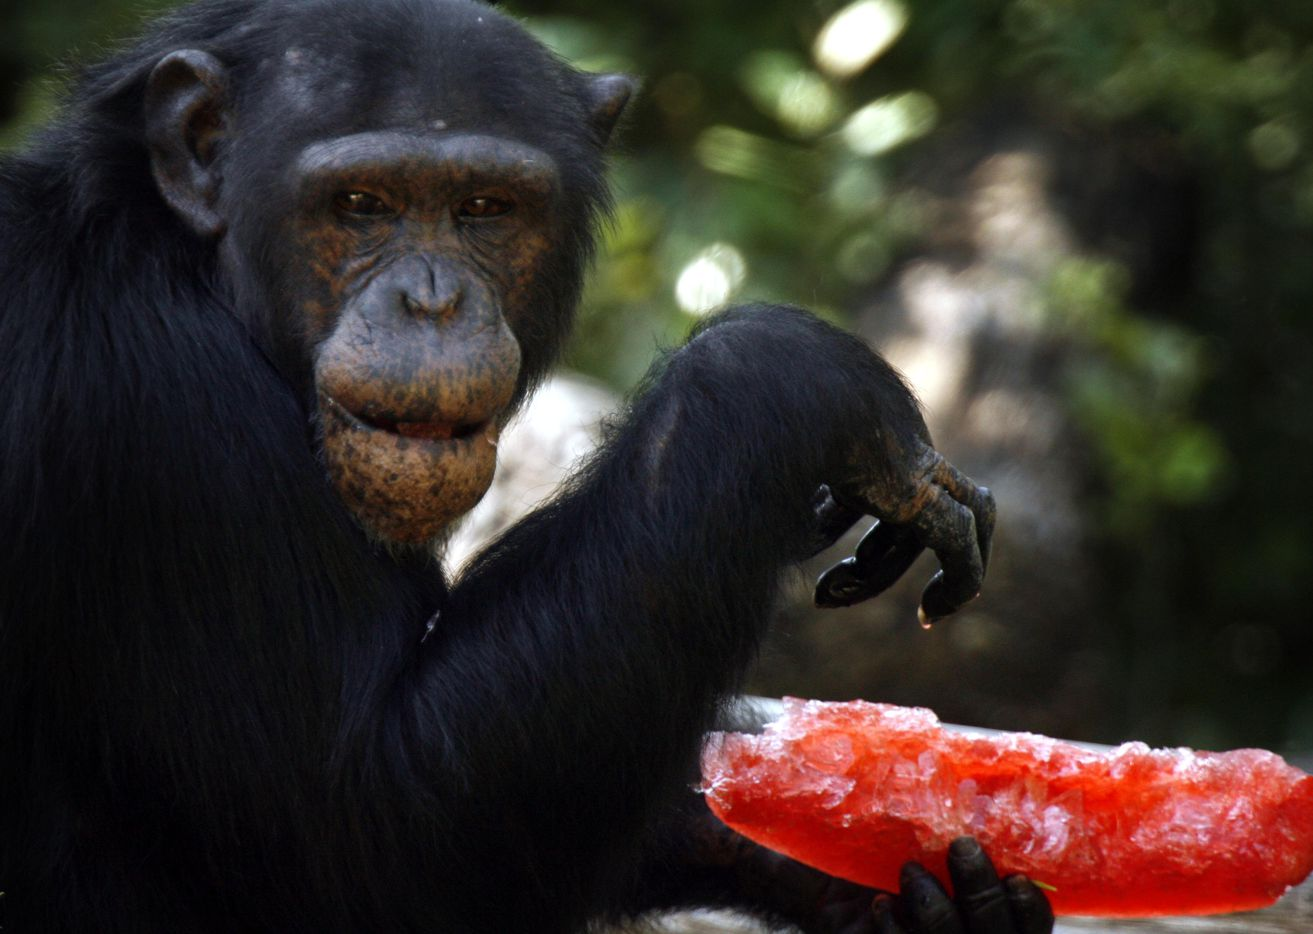 Chloe, a chimpanzee, ate a frozen treat at the Dallas Zoo as a way to stay cool in July 2006.